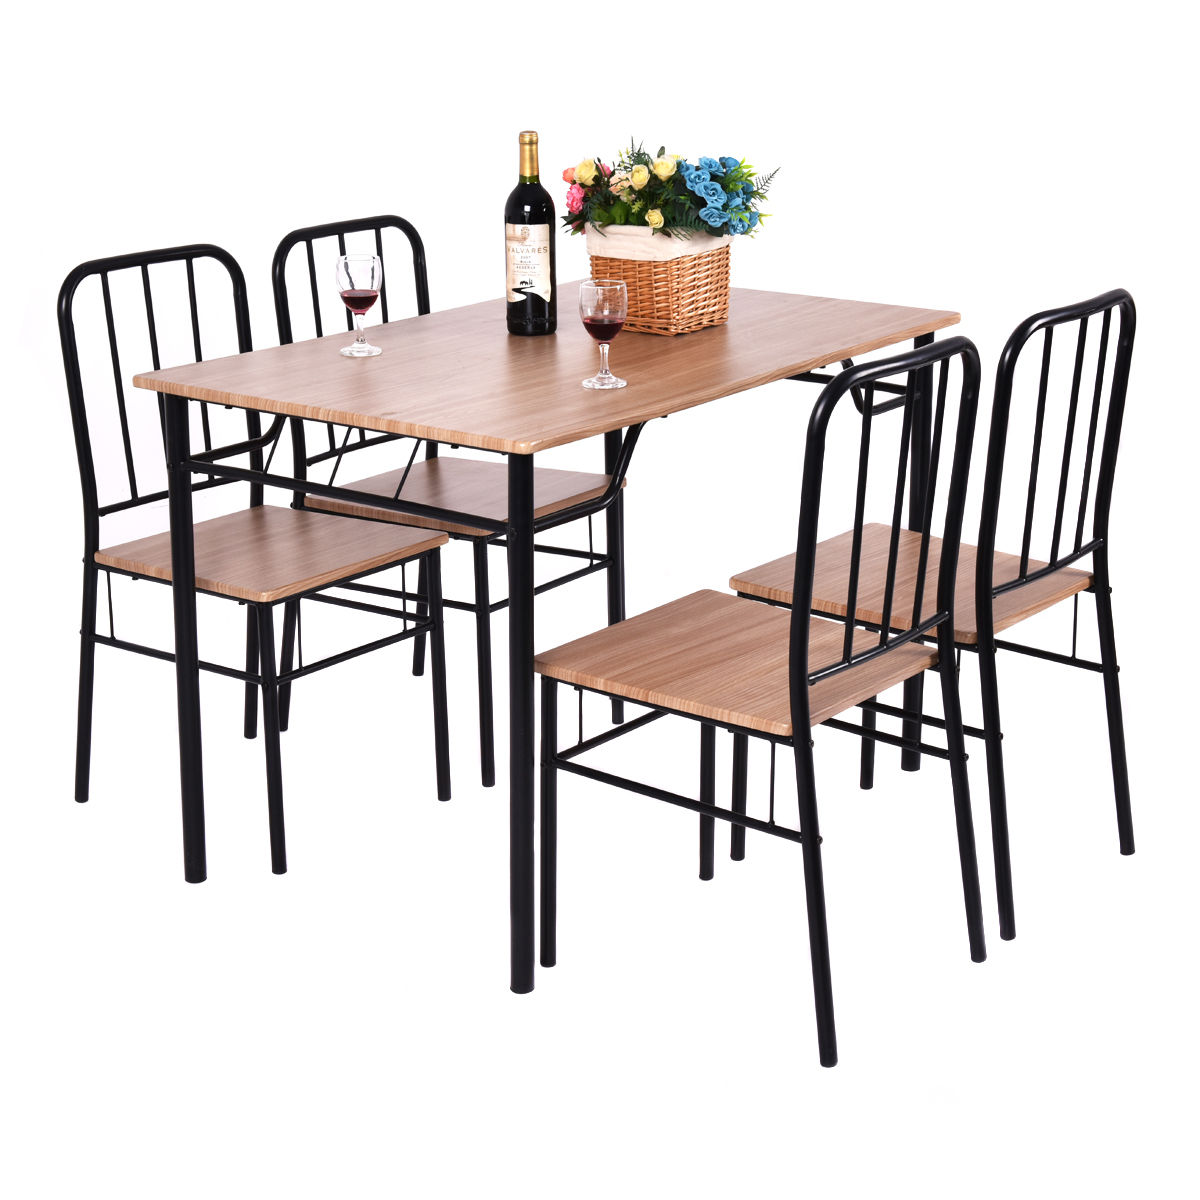 Costway 5 Piece Dining Room Set Table And 4 Chairs Metal Wood Home Kitchen Modern Furniture by Costway